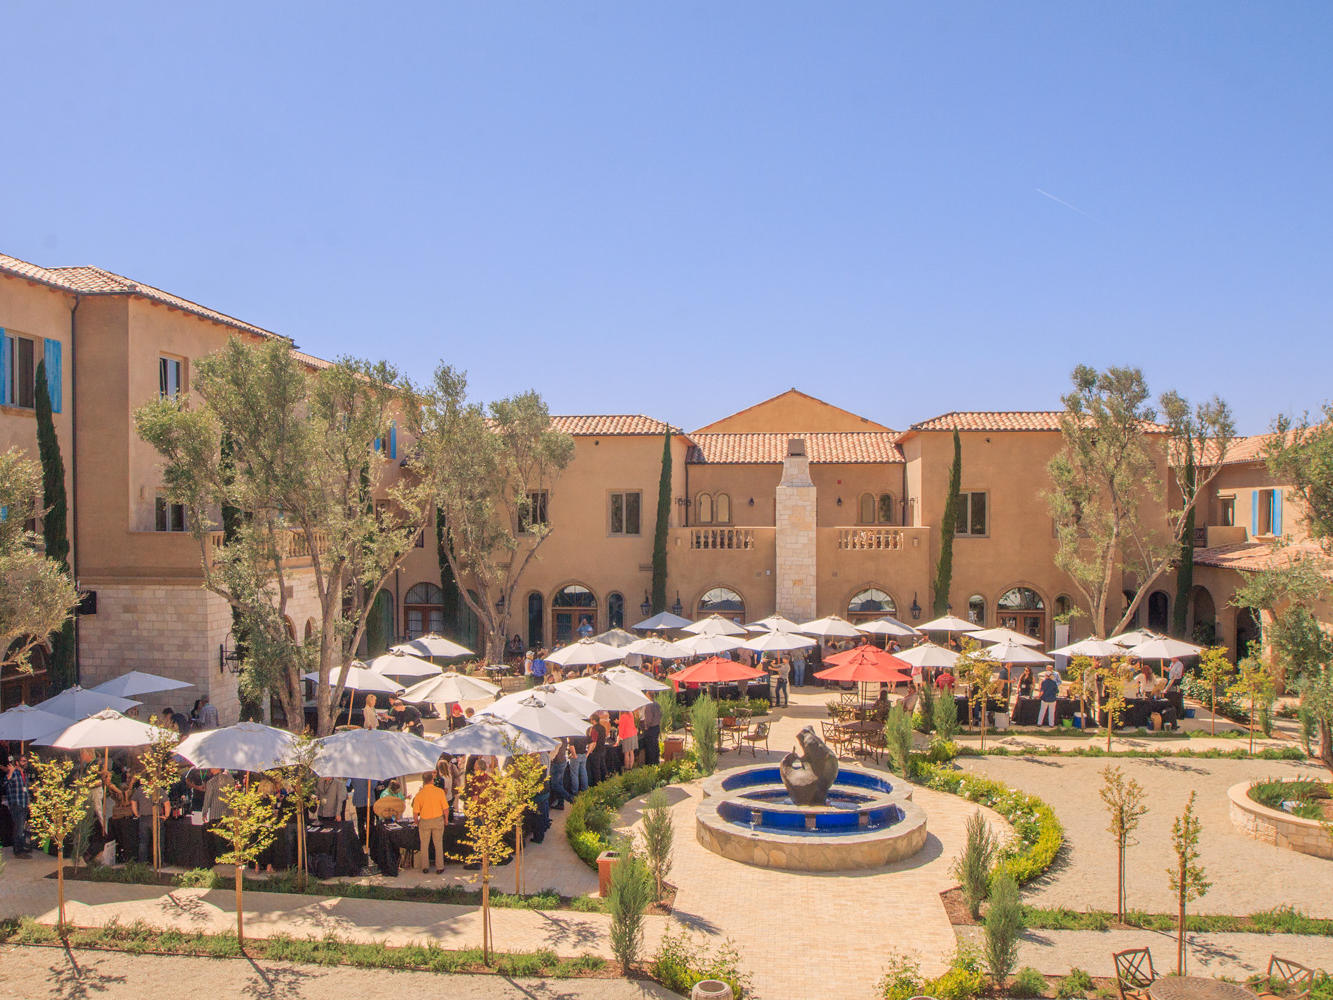 Event in Allegretto Vineyard Resorts Courtyard